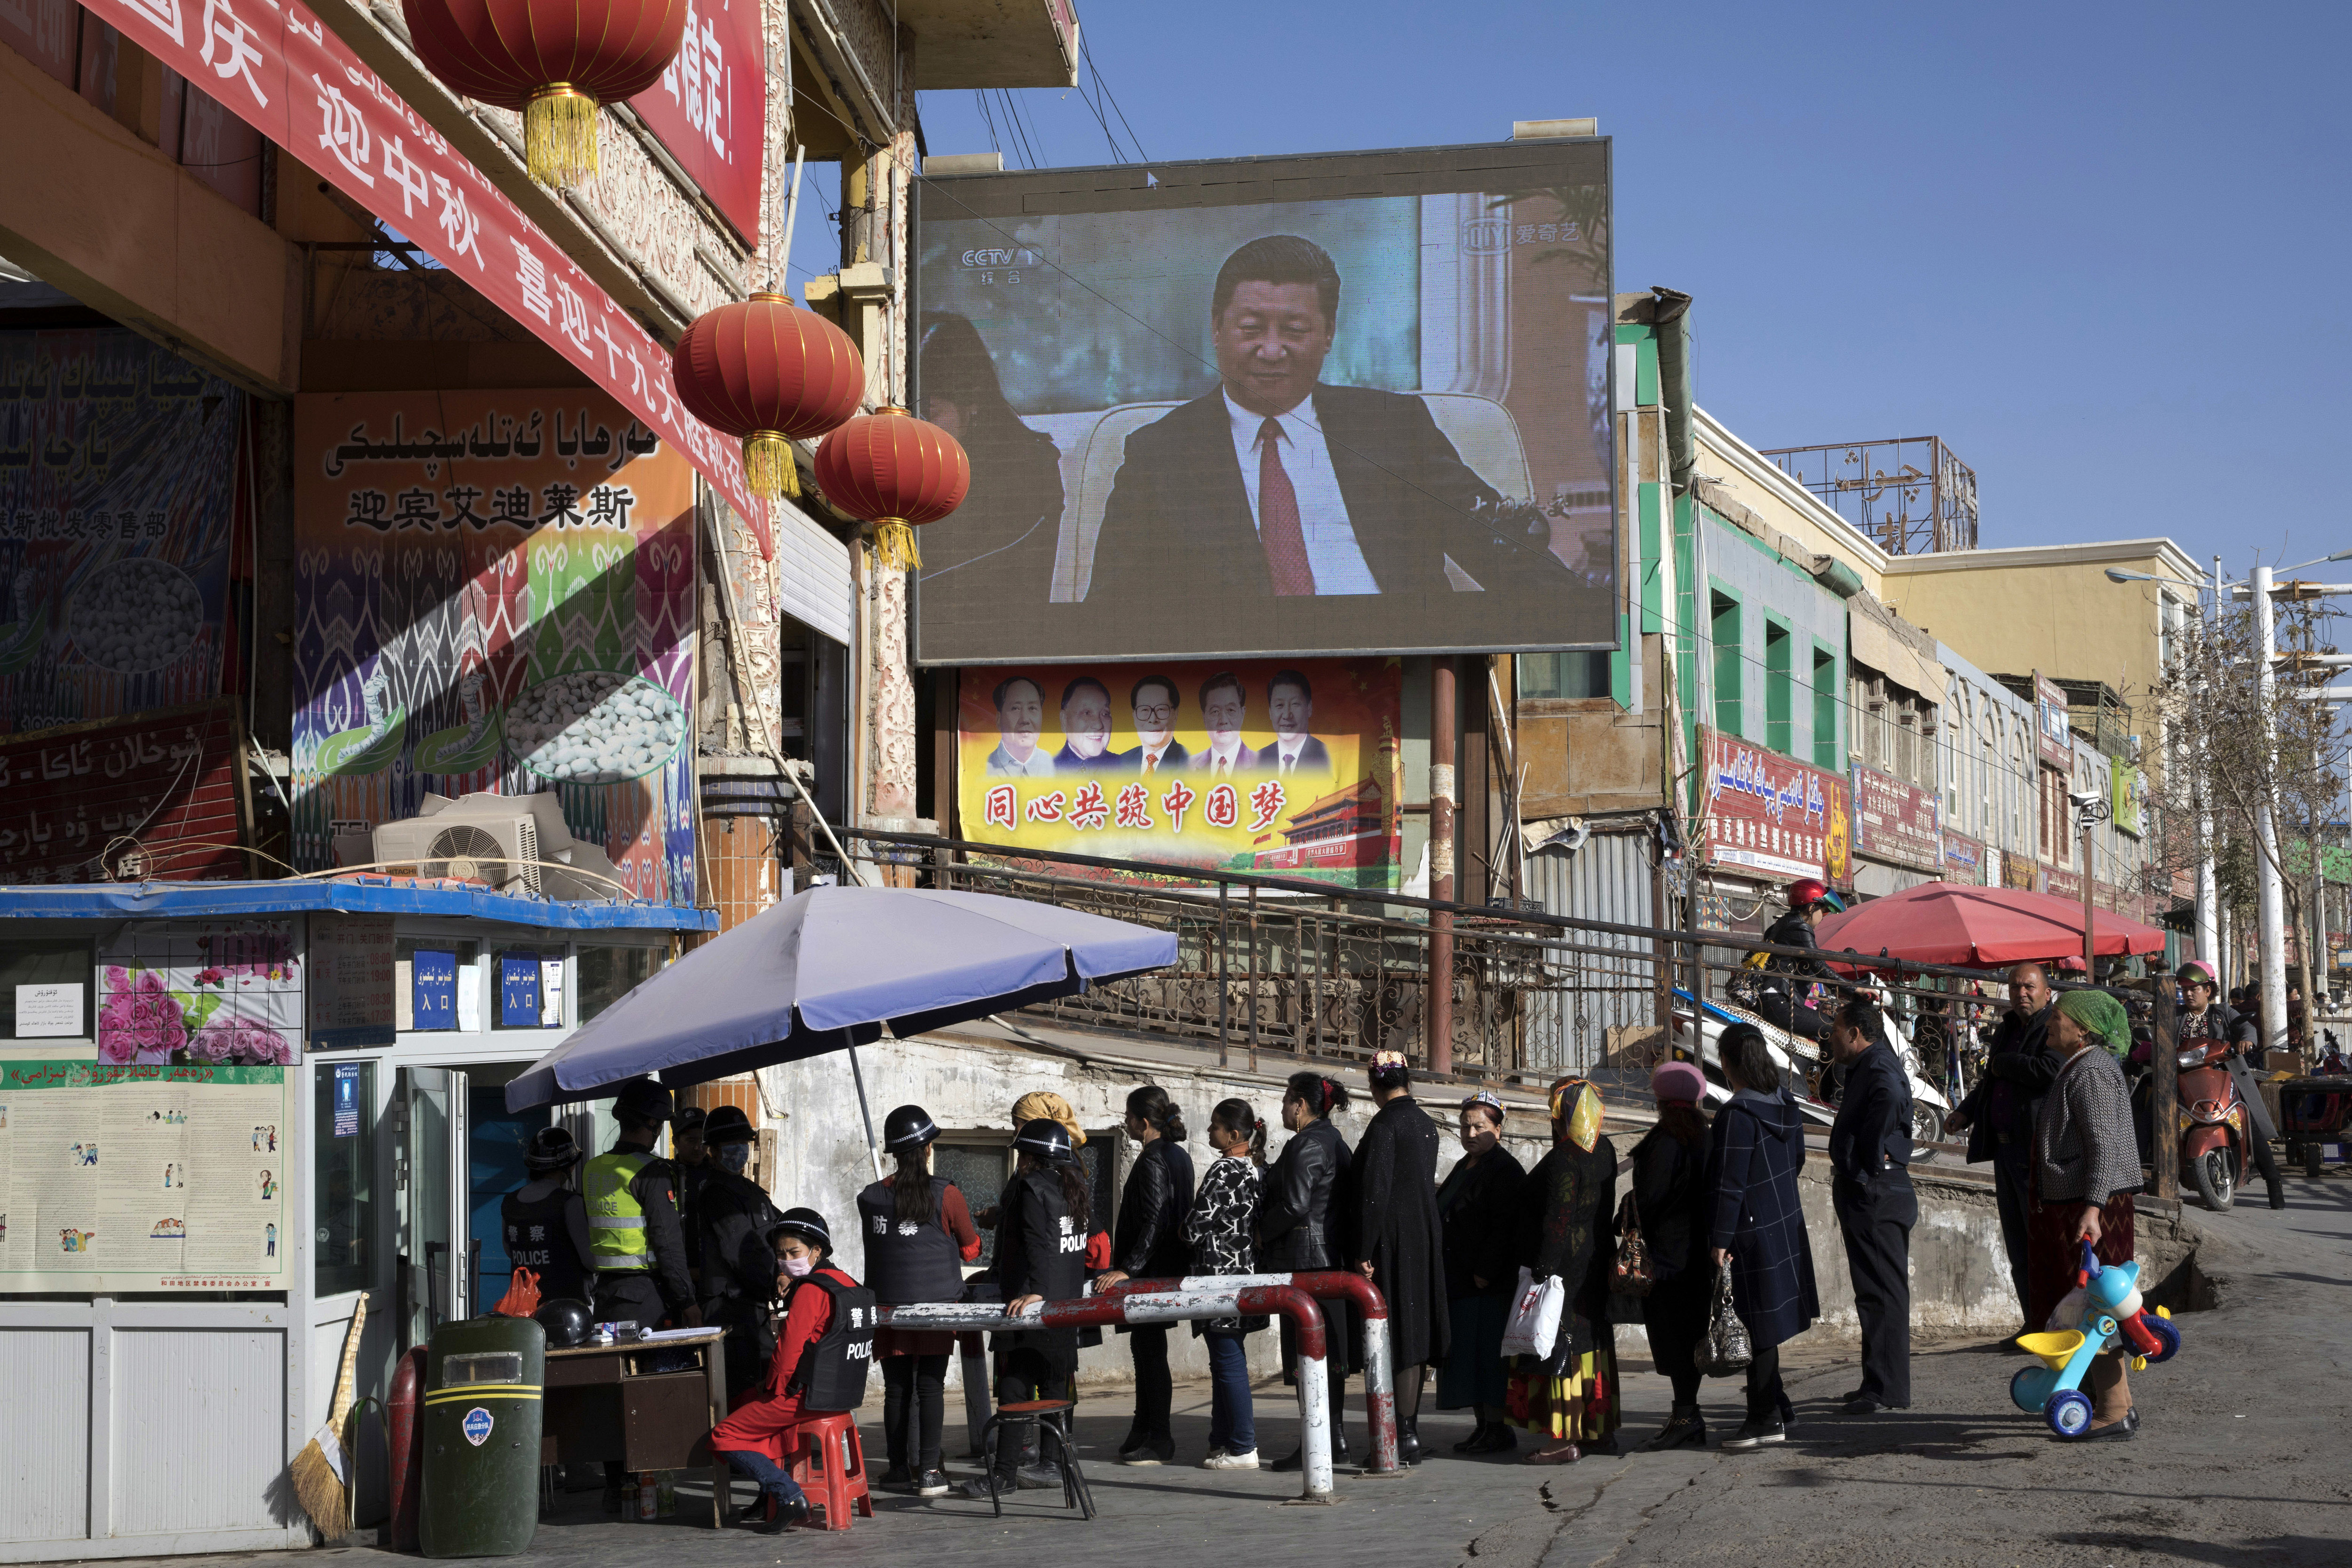 In this Nov. 3, 2017, file photo, residents walk through a security checkpoint into the Hotan Bazaar where a screen shows Chinese President Xi Jinping in Hotan in western China's Xinjiang region. China says the U.N.'s counterterrorism chief visited Xinjiang last week despite protests from the U.S. and a rights group that the trip would be inappropriate in light of the human rights conditions in the far west region.